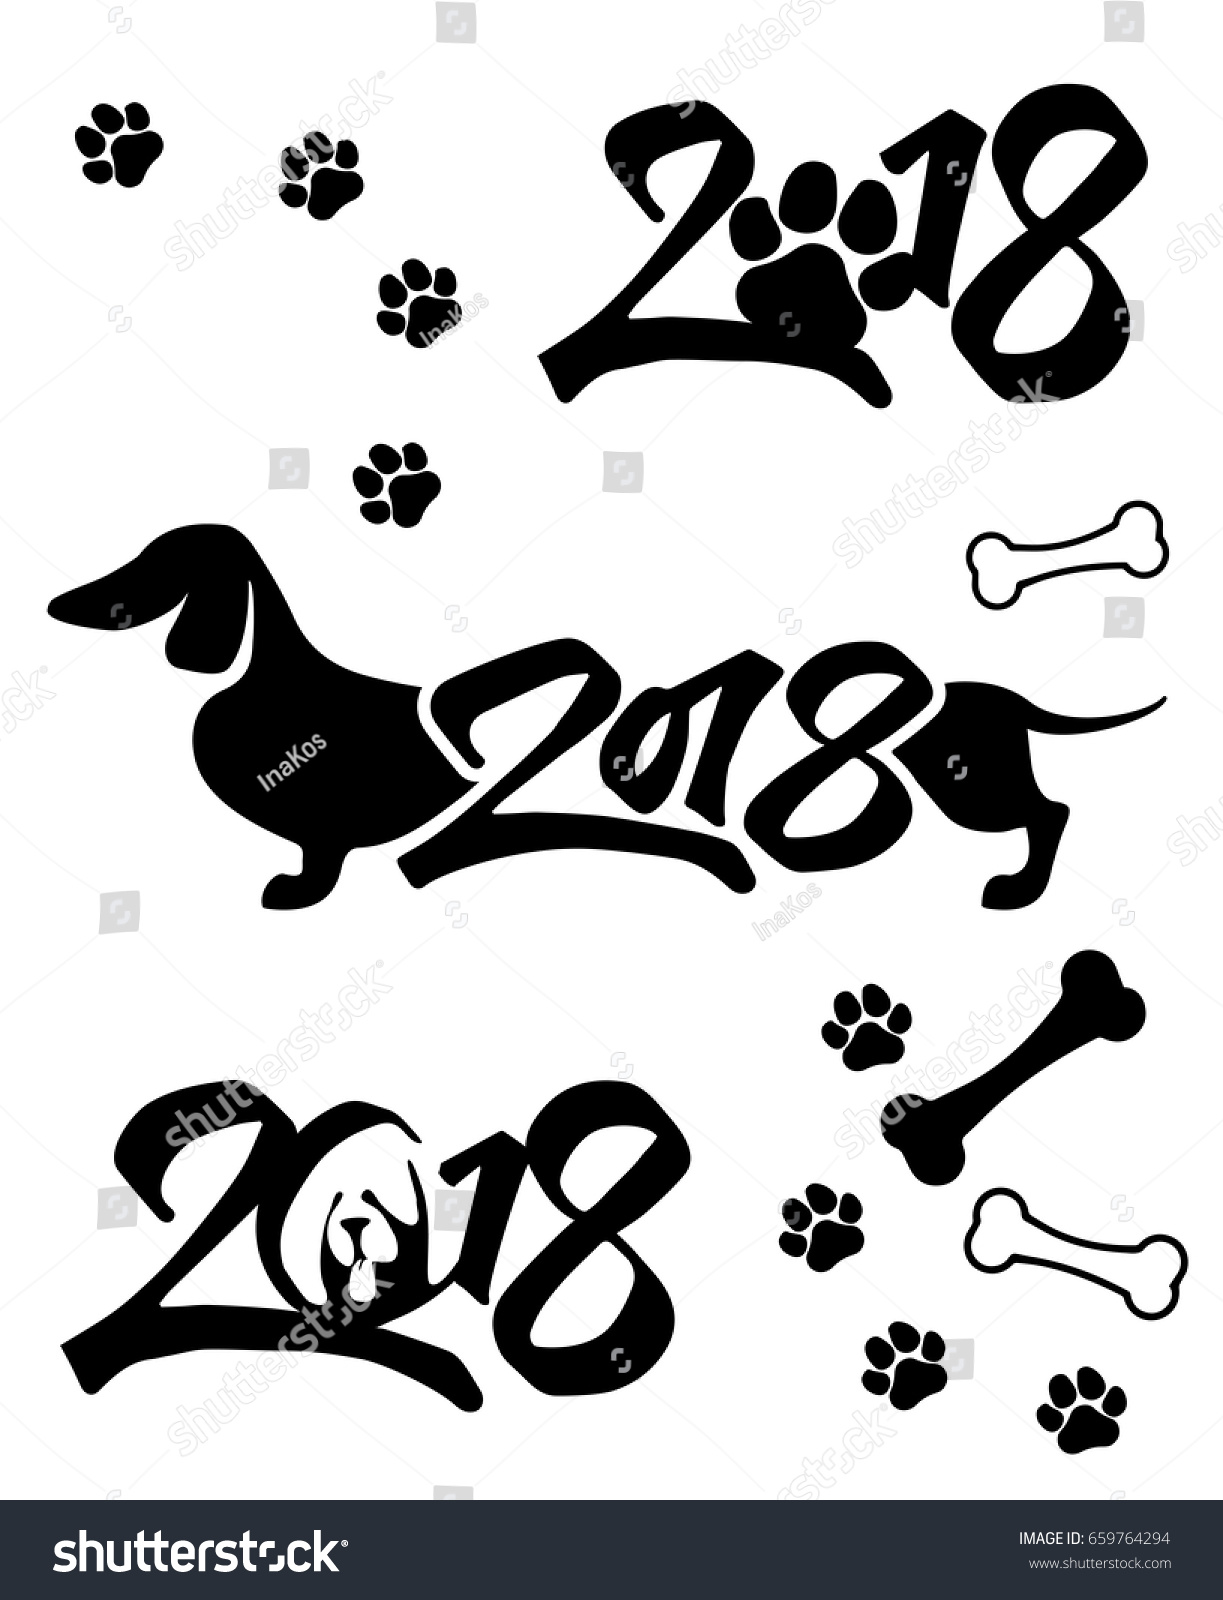 black and white isolated logo 2018 on white background template for new years